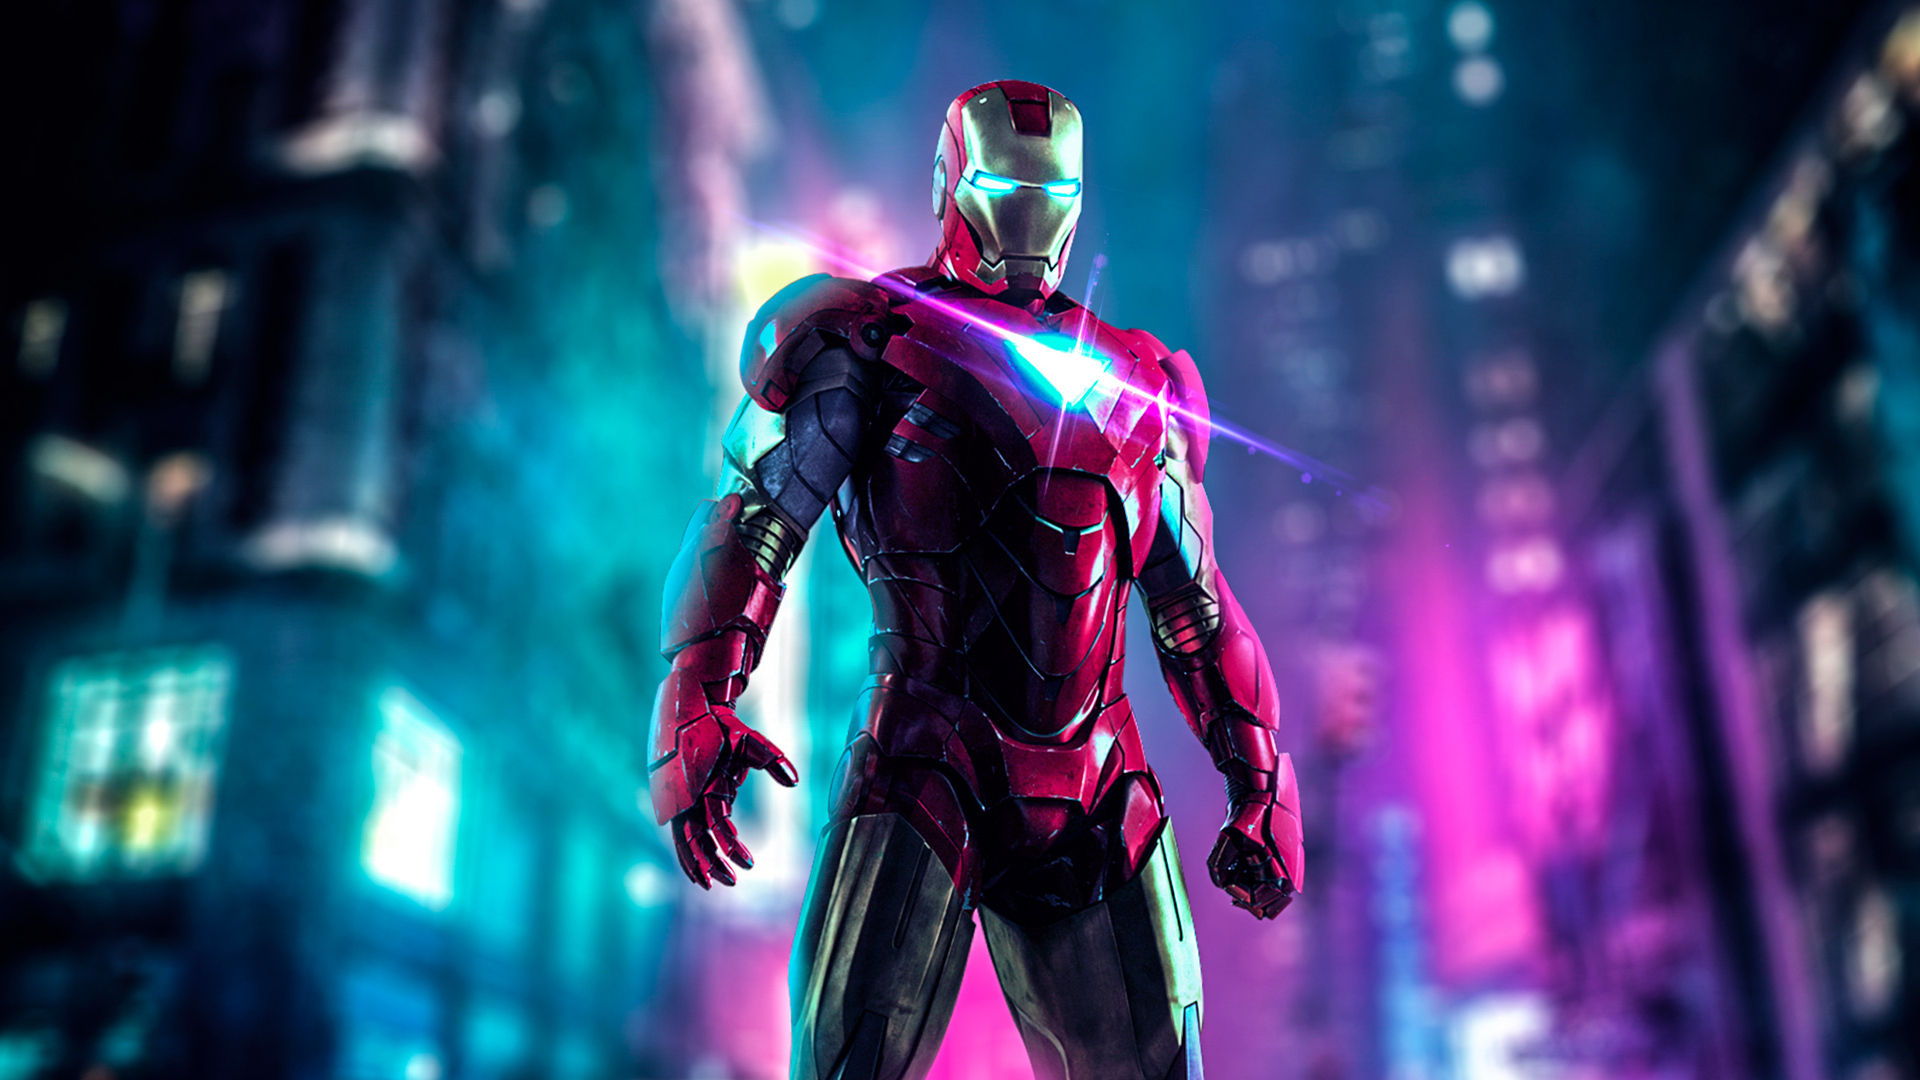 1920x1080 Iron Man Neon Art Laptop Full Hd 1080p Hd 4k